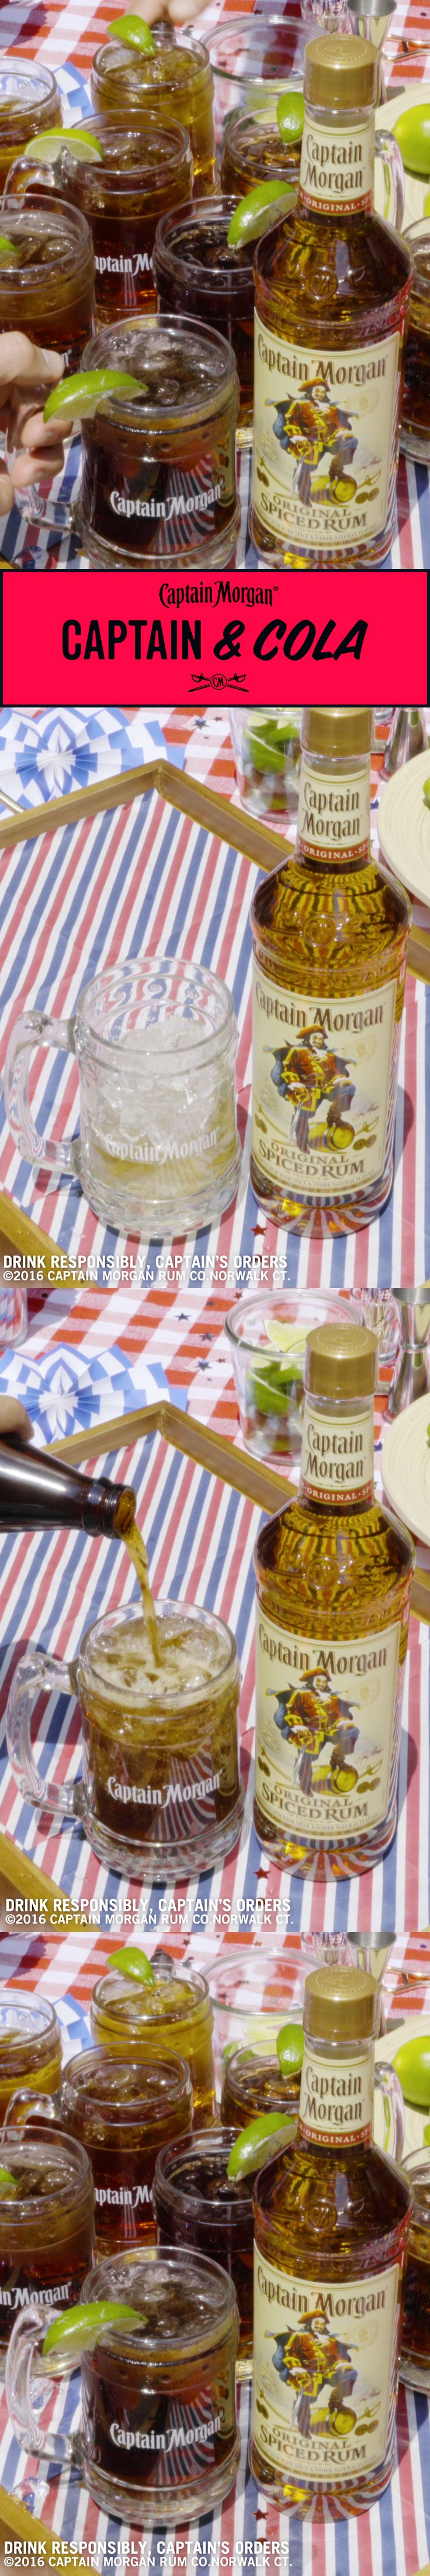 Captain & Cola. Great for small BBQ parties and BBQ parties you thought were going to be small. Recipe: 1.5 oz Captain Morgan Original Spiced Rum 5 oz Cola 1 lime wedge Get more rum recipes at https://us.captainmorgan.com/rum-cocktails/?utm_source=pinterest&utm_medium=social&utm_term=bbq&utm_content=captain_cola&utm_campaign=recipe